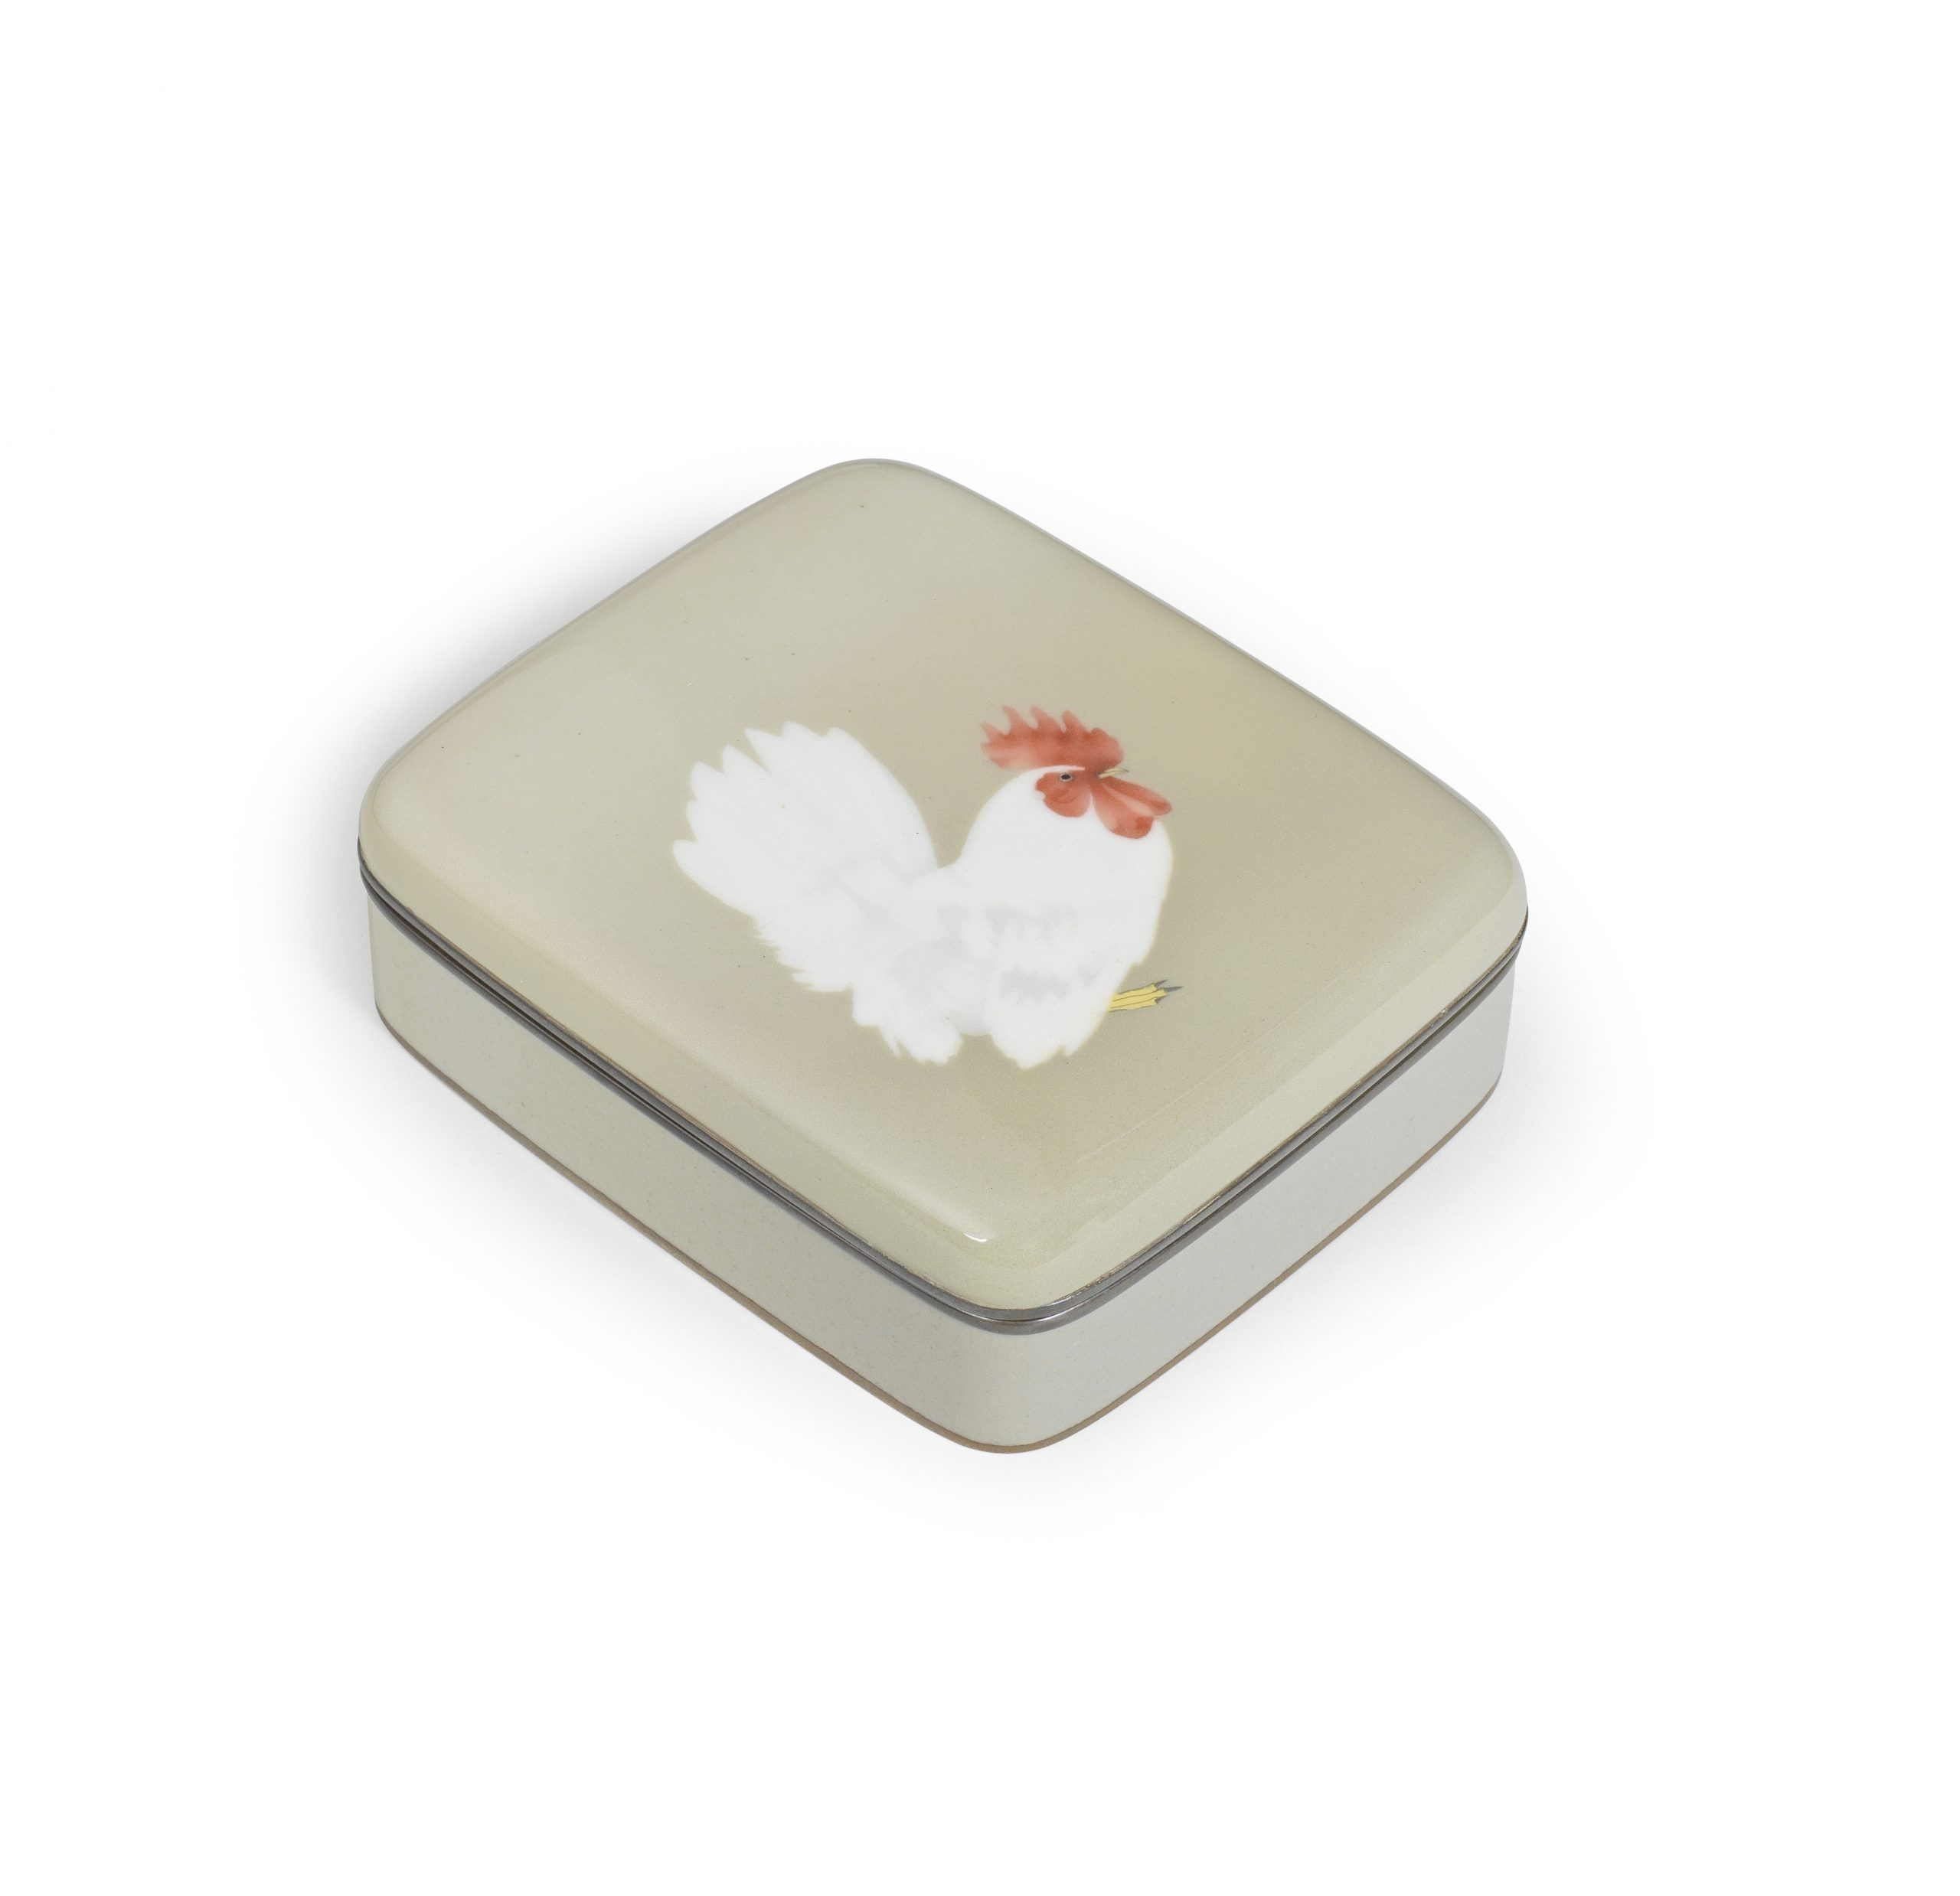 A Cloisonné-enamel rounded rectangular box with en-suite cover, By Namikawa Sosuke (1847-1910), Meiji era (1868-1912), late 19th/early 20th century - Snow, Sex and Spectacle